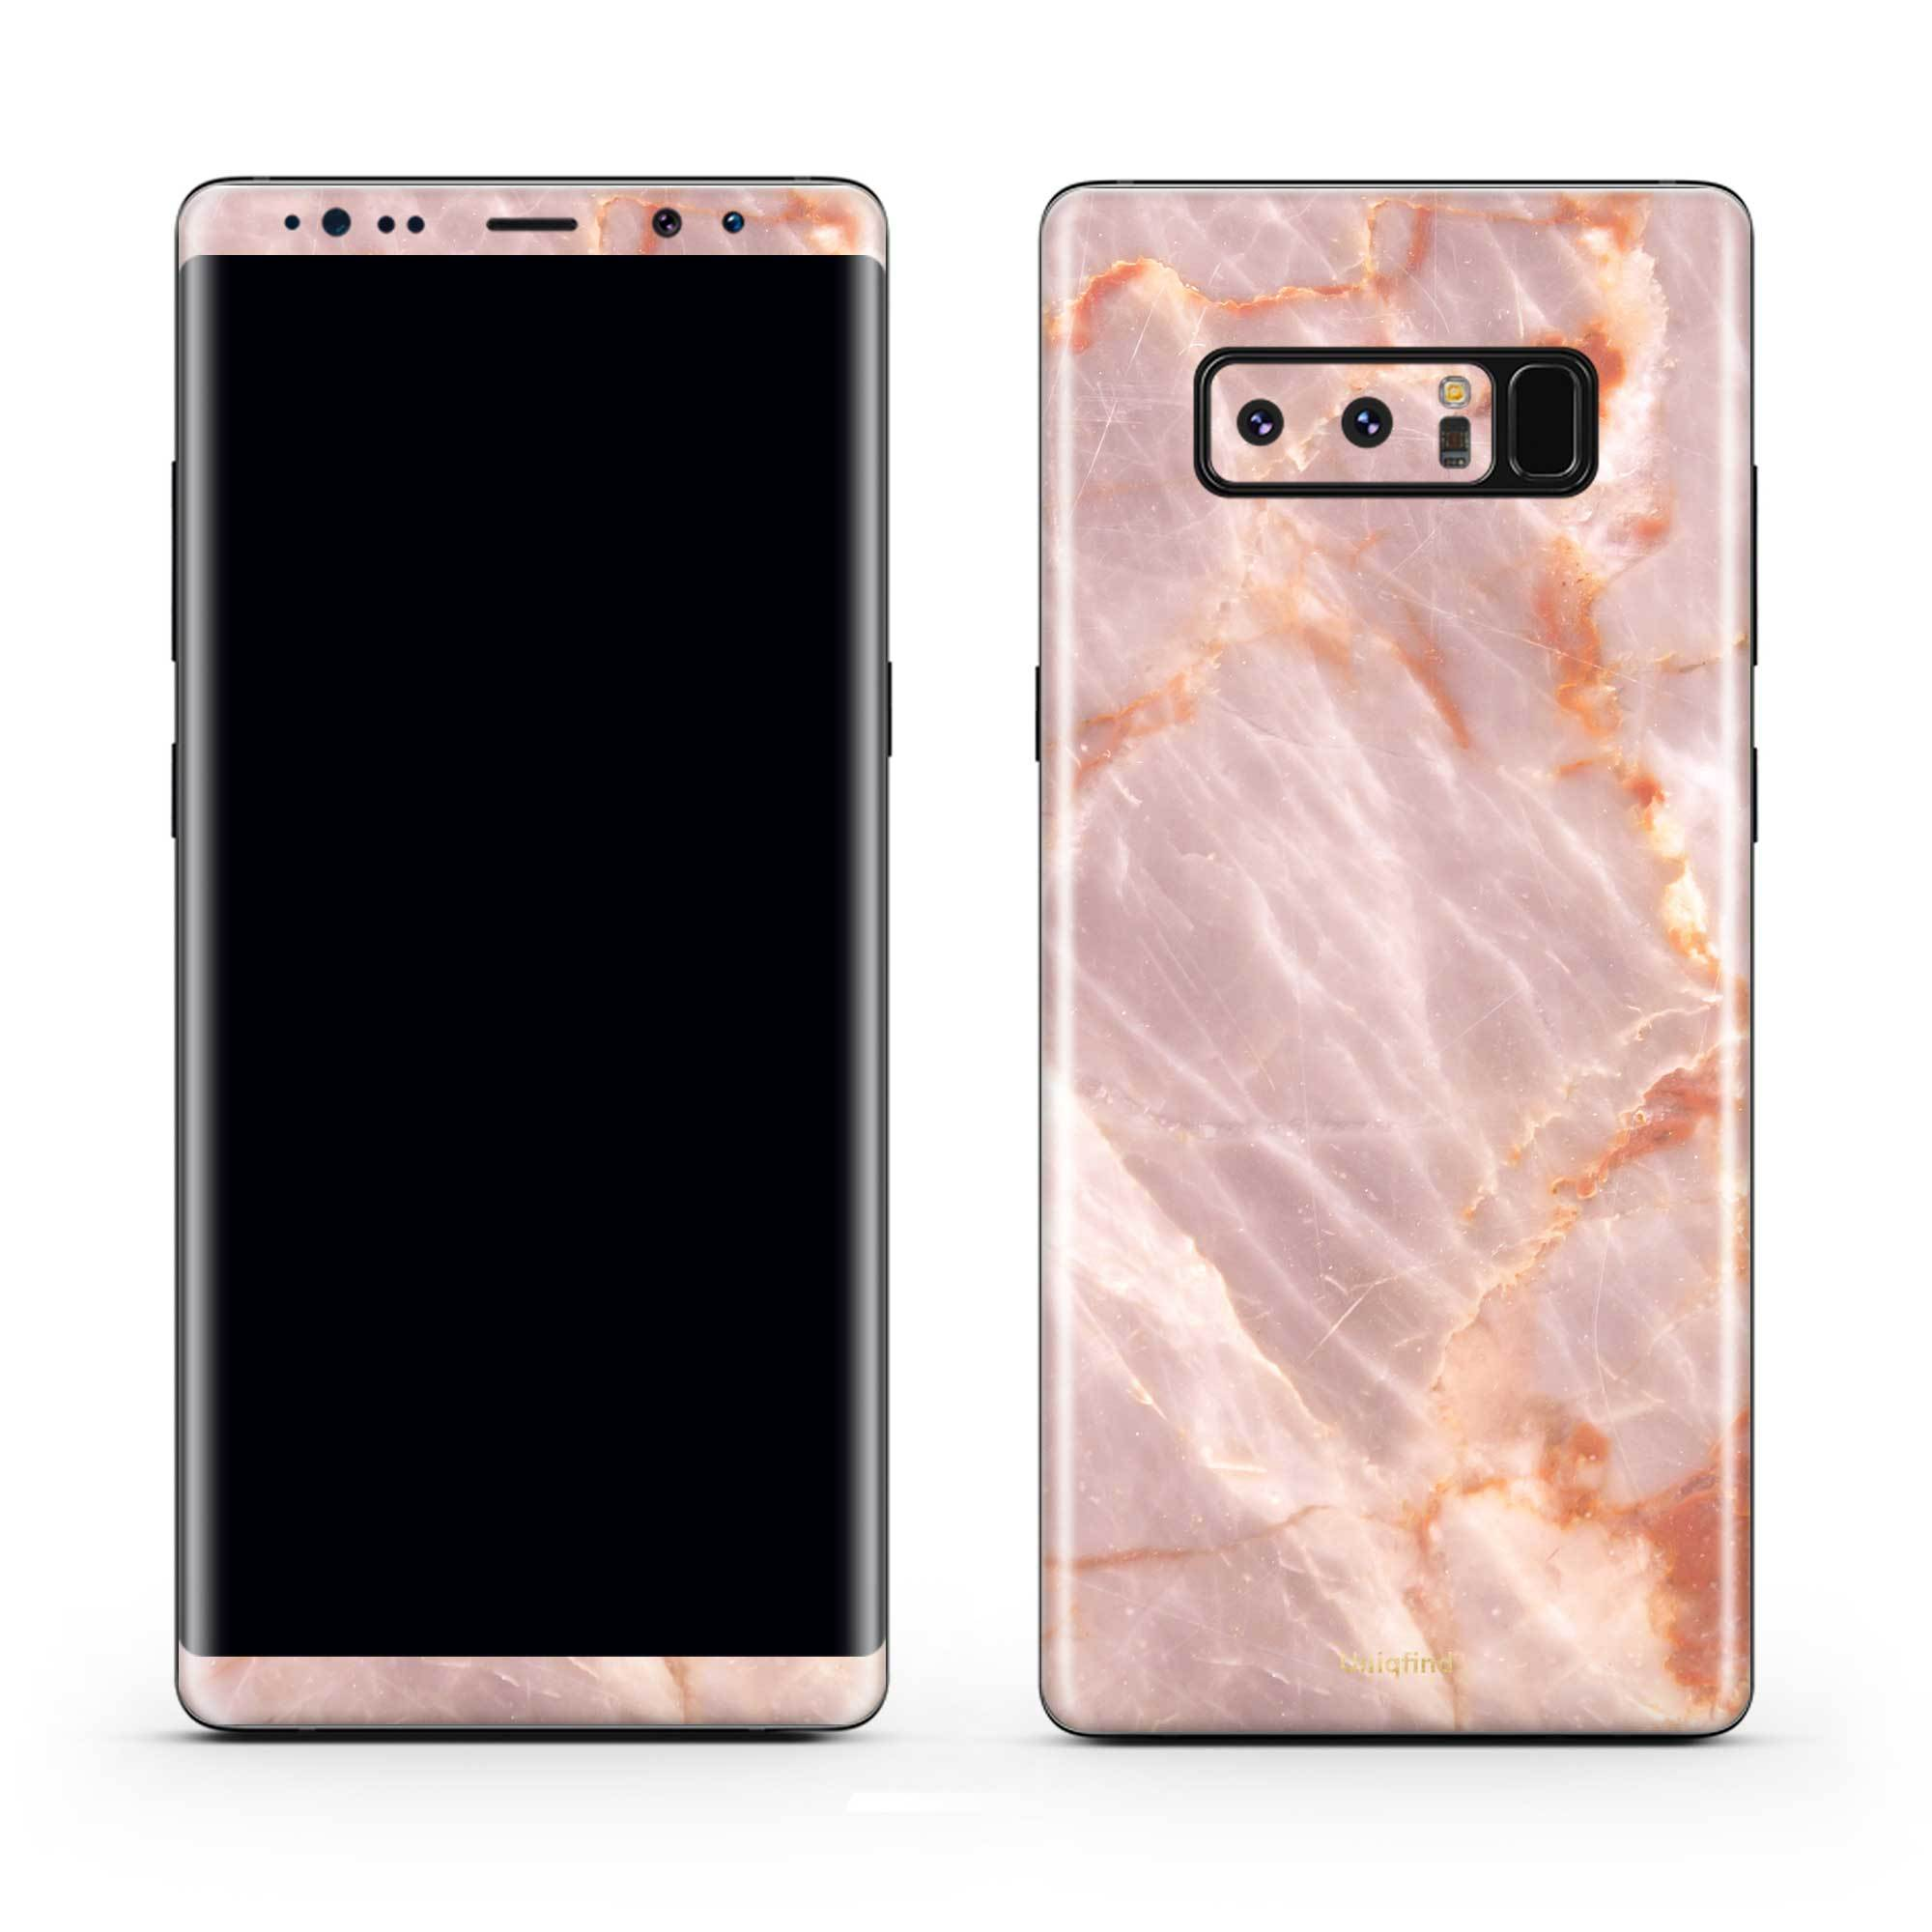 Blush Marble Galaxy Note 8 Skin + Case